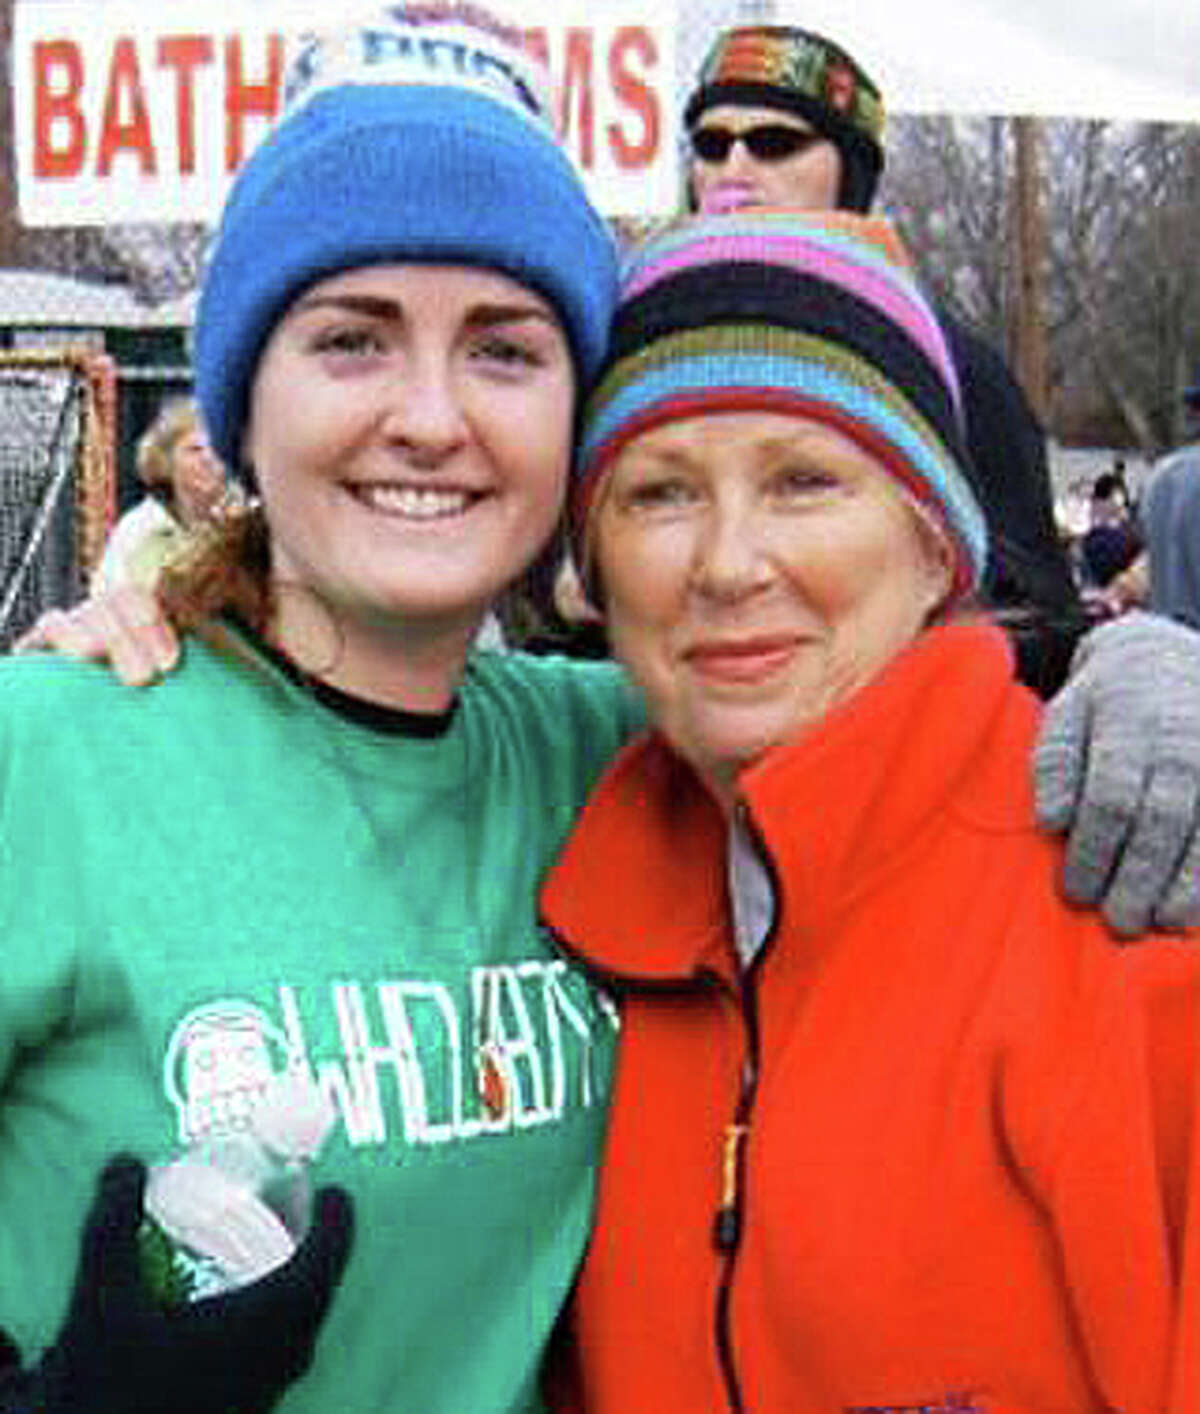 Former Fairfield resident Julia Daly, left, with her mother Sharon of Fairfield, will compete again in this year's Boston Marathon like thousands of other runners unable to finish last year's race because of terrorist bombings.